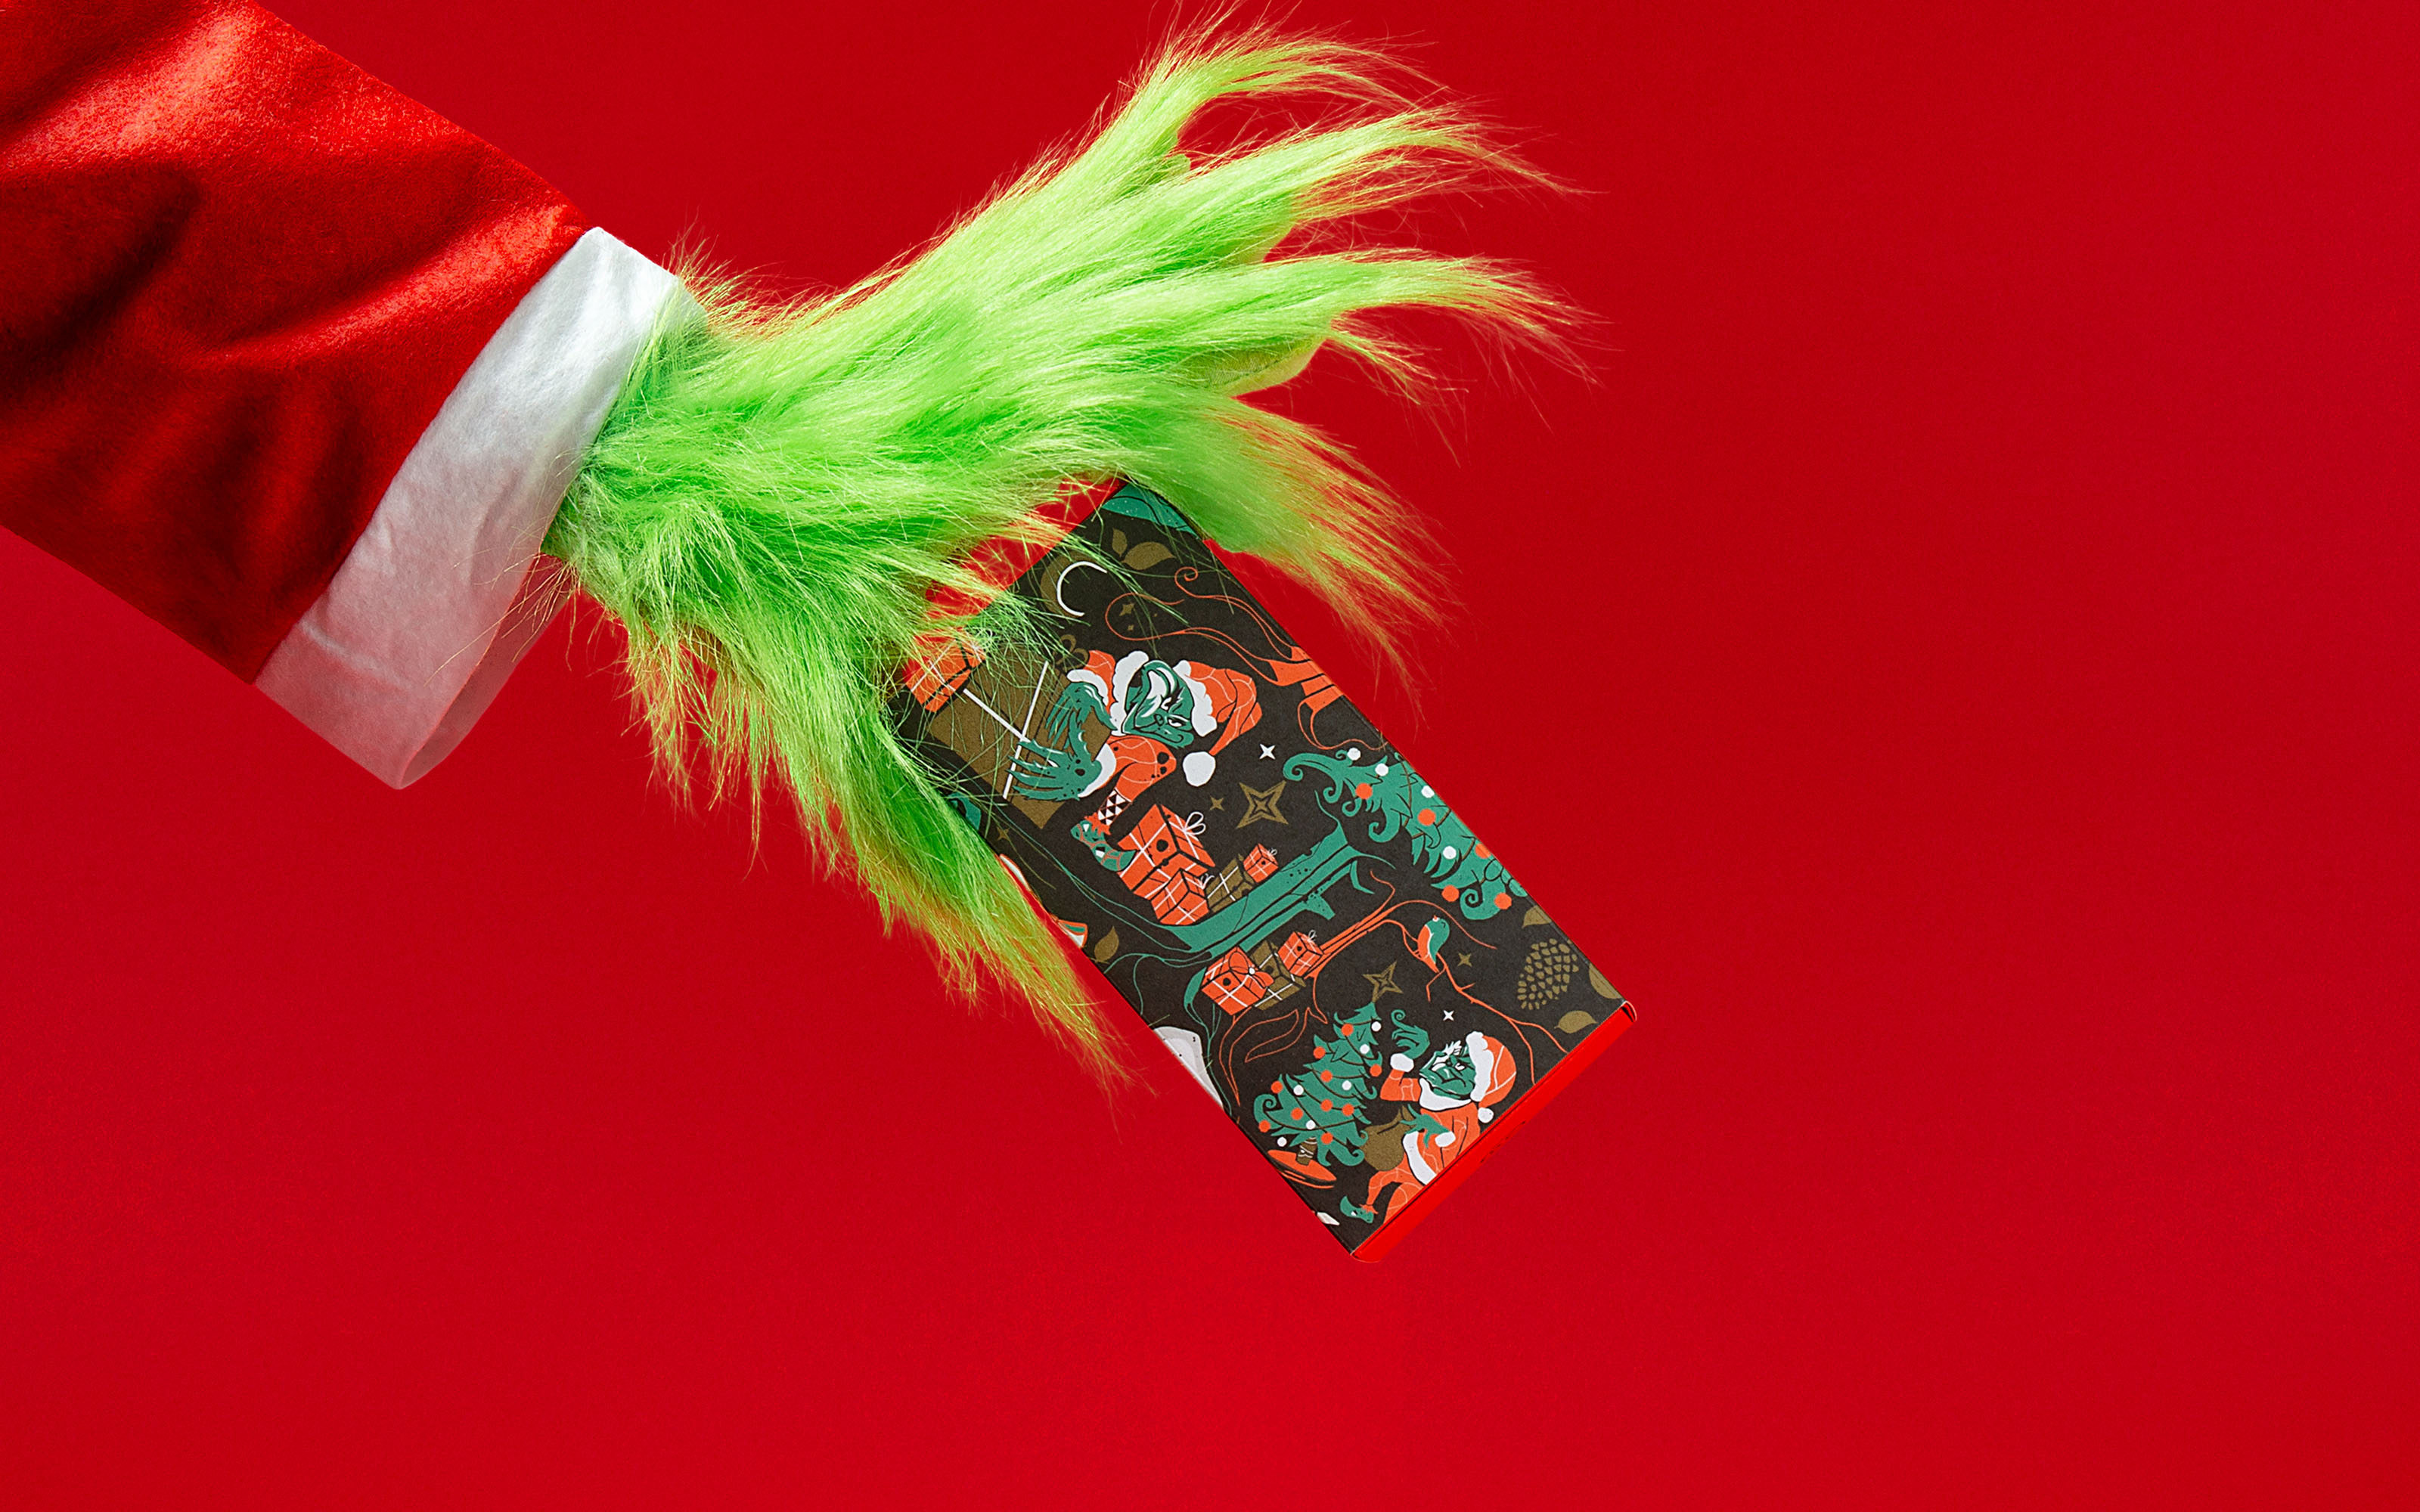 Robot Food channel their inner Grinch with a gift to steal this Christmas.